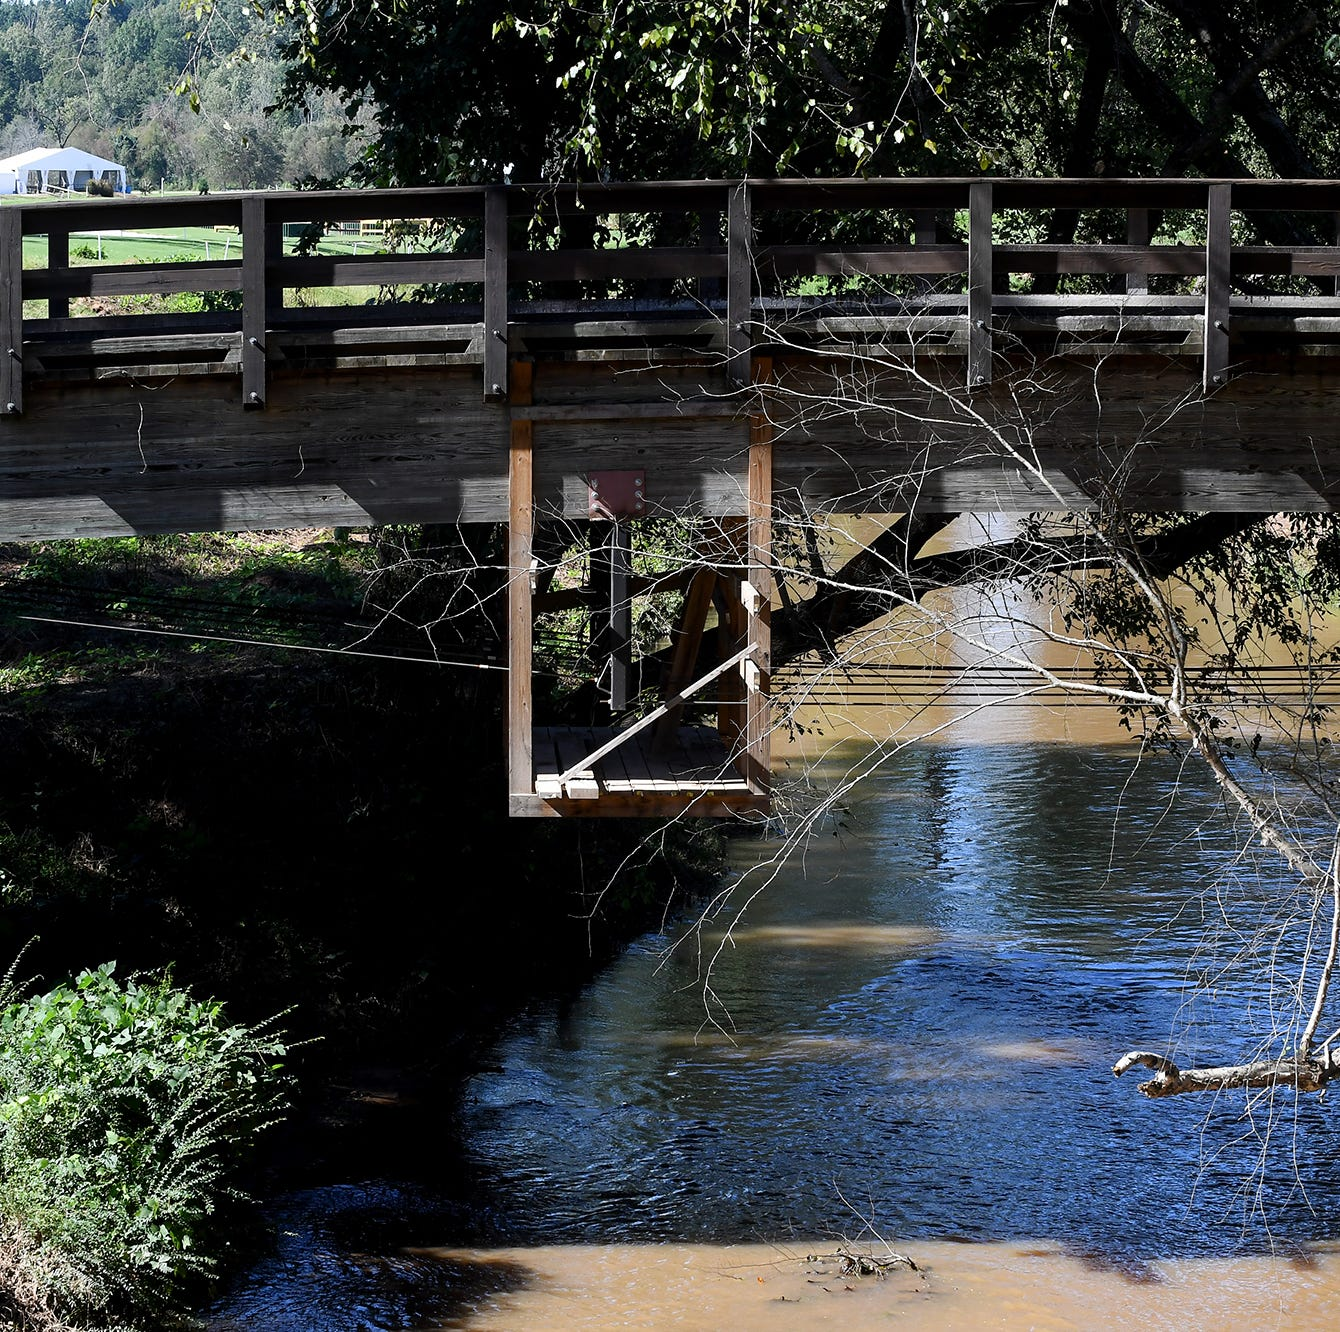 Tryon International Equestrian Center in violation of water quality standards